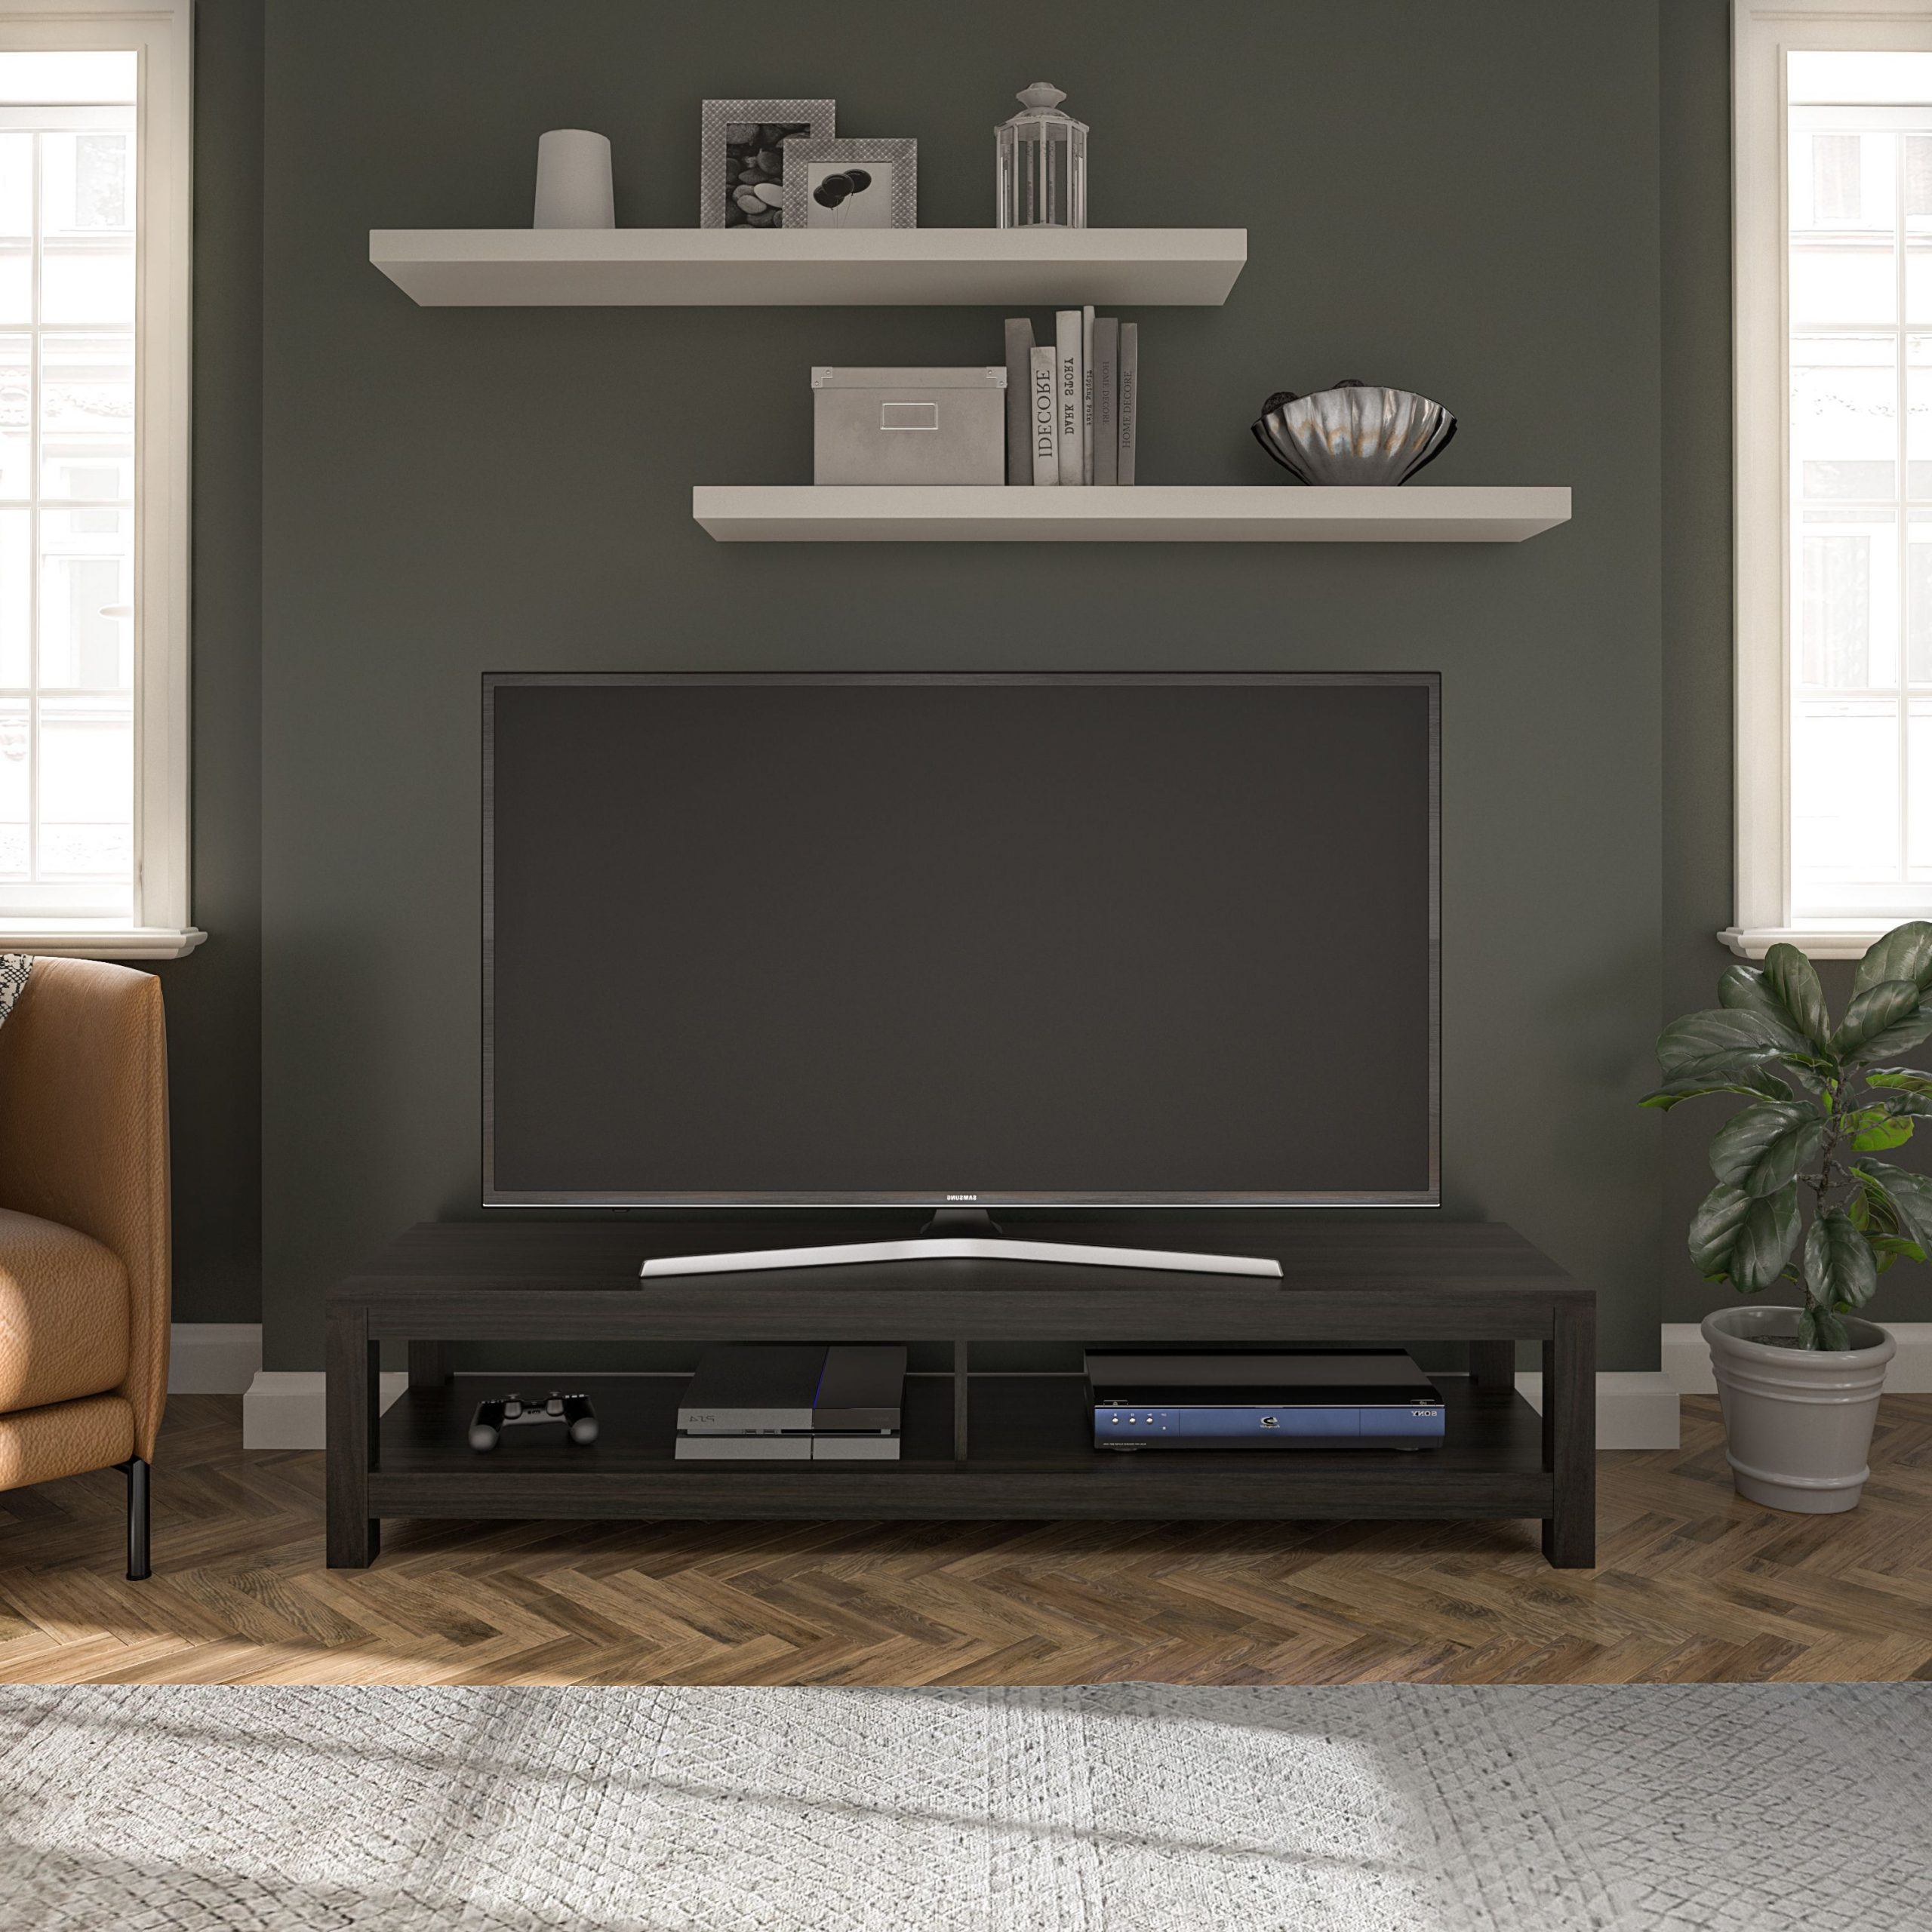 """Well Liked Karon Tv Stands For Tvs Up To 65"""" Intended For Mainstays Easy Assembly Tv Stand For Tv's Up To  (View 2 of 25)"""